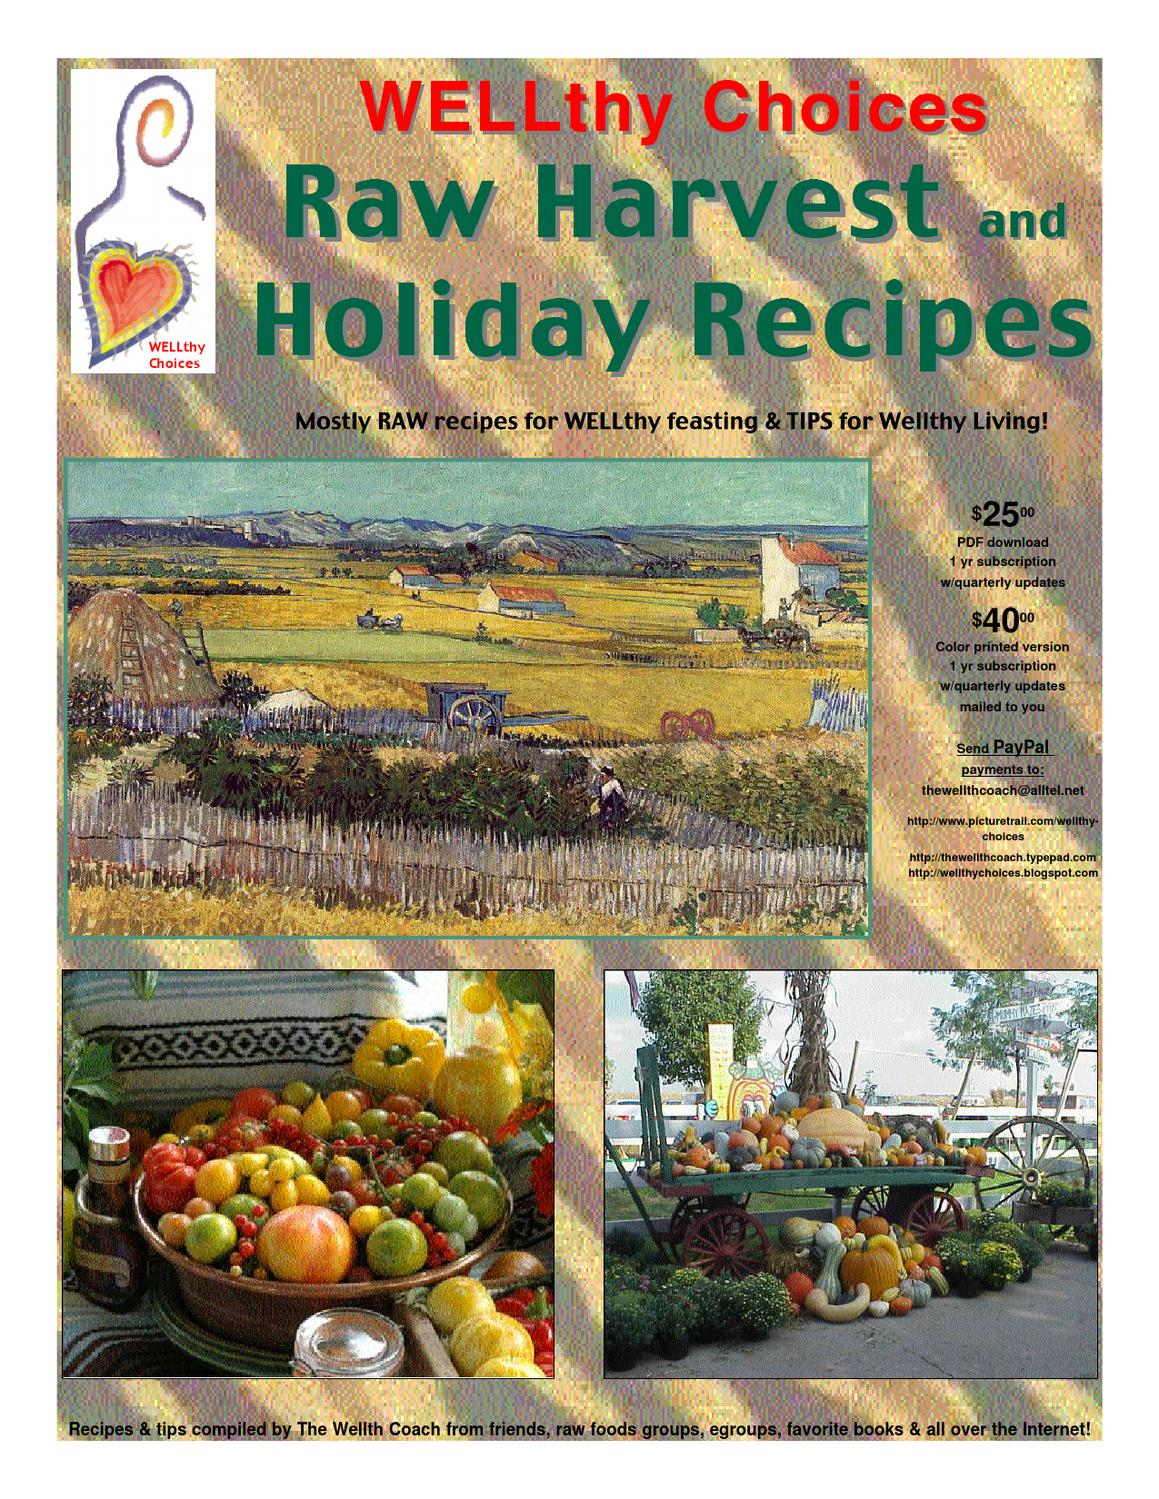 Raw harvest holiday recipes by wellthy choices issuu forumfinder Choice Image